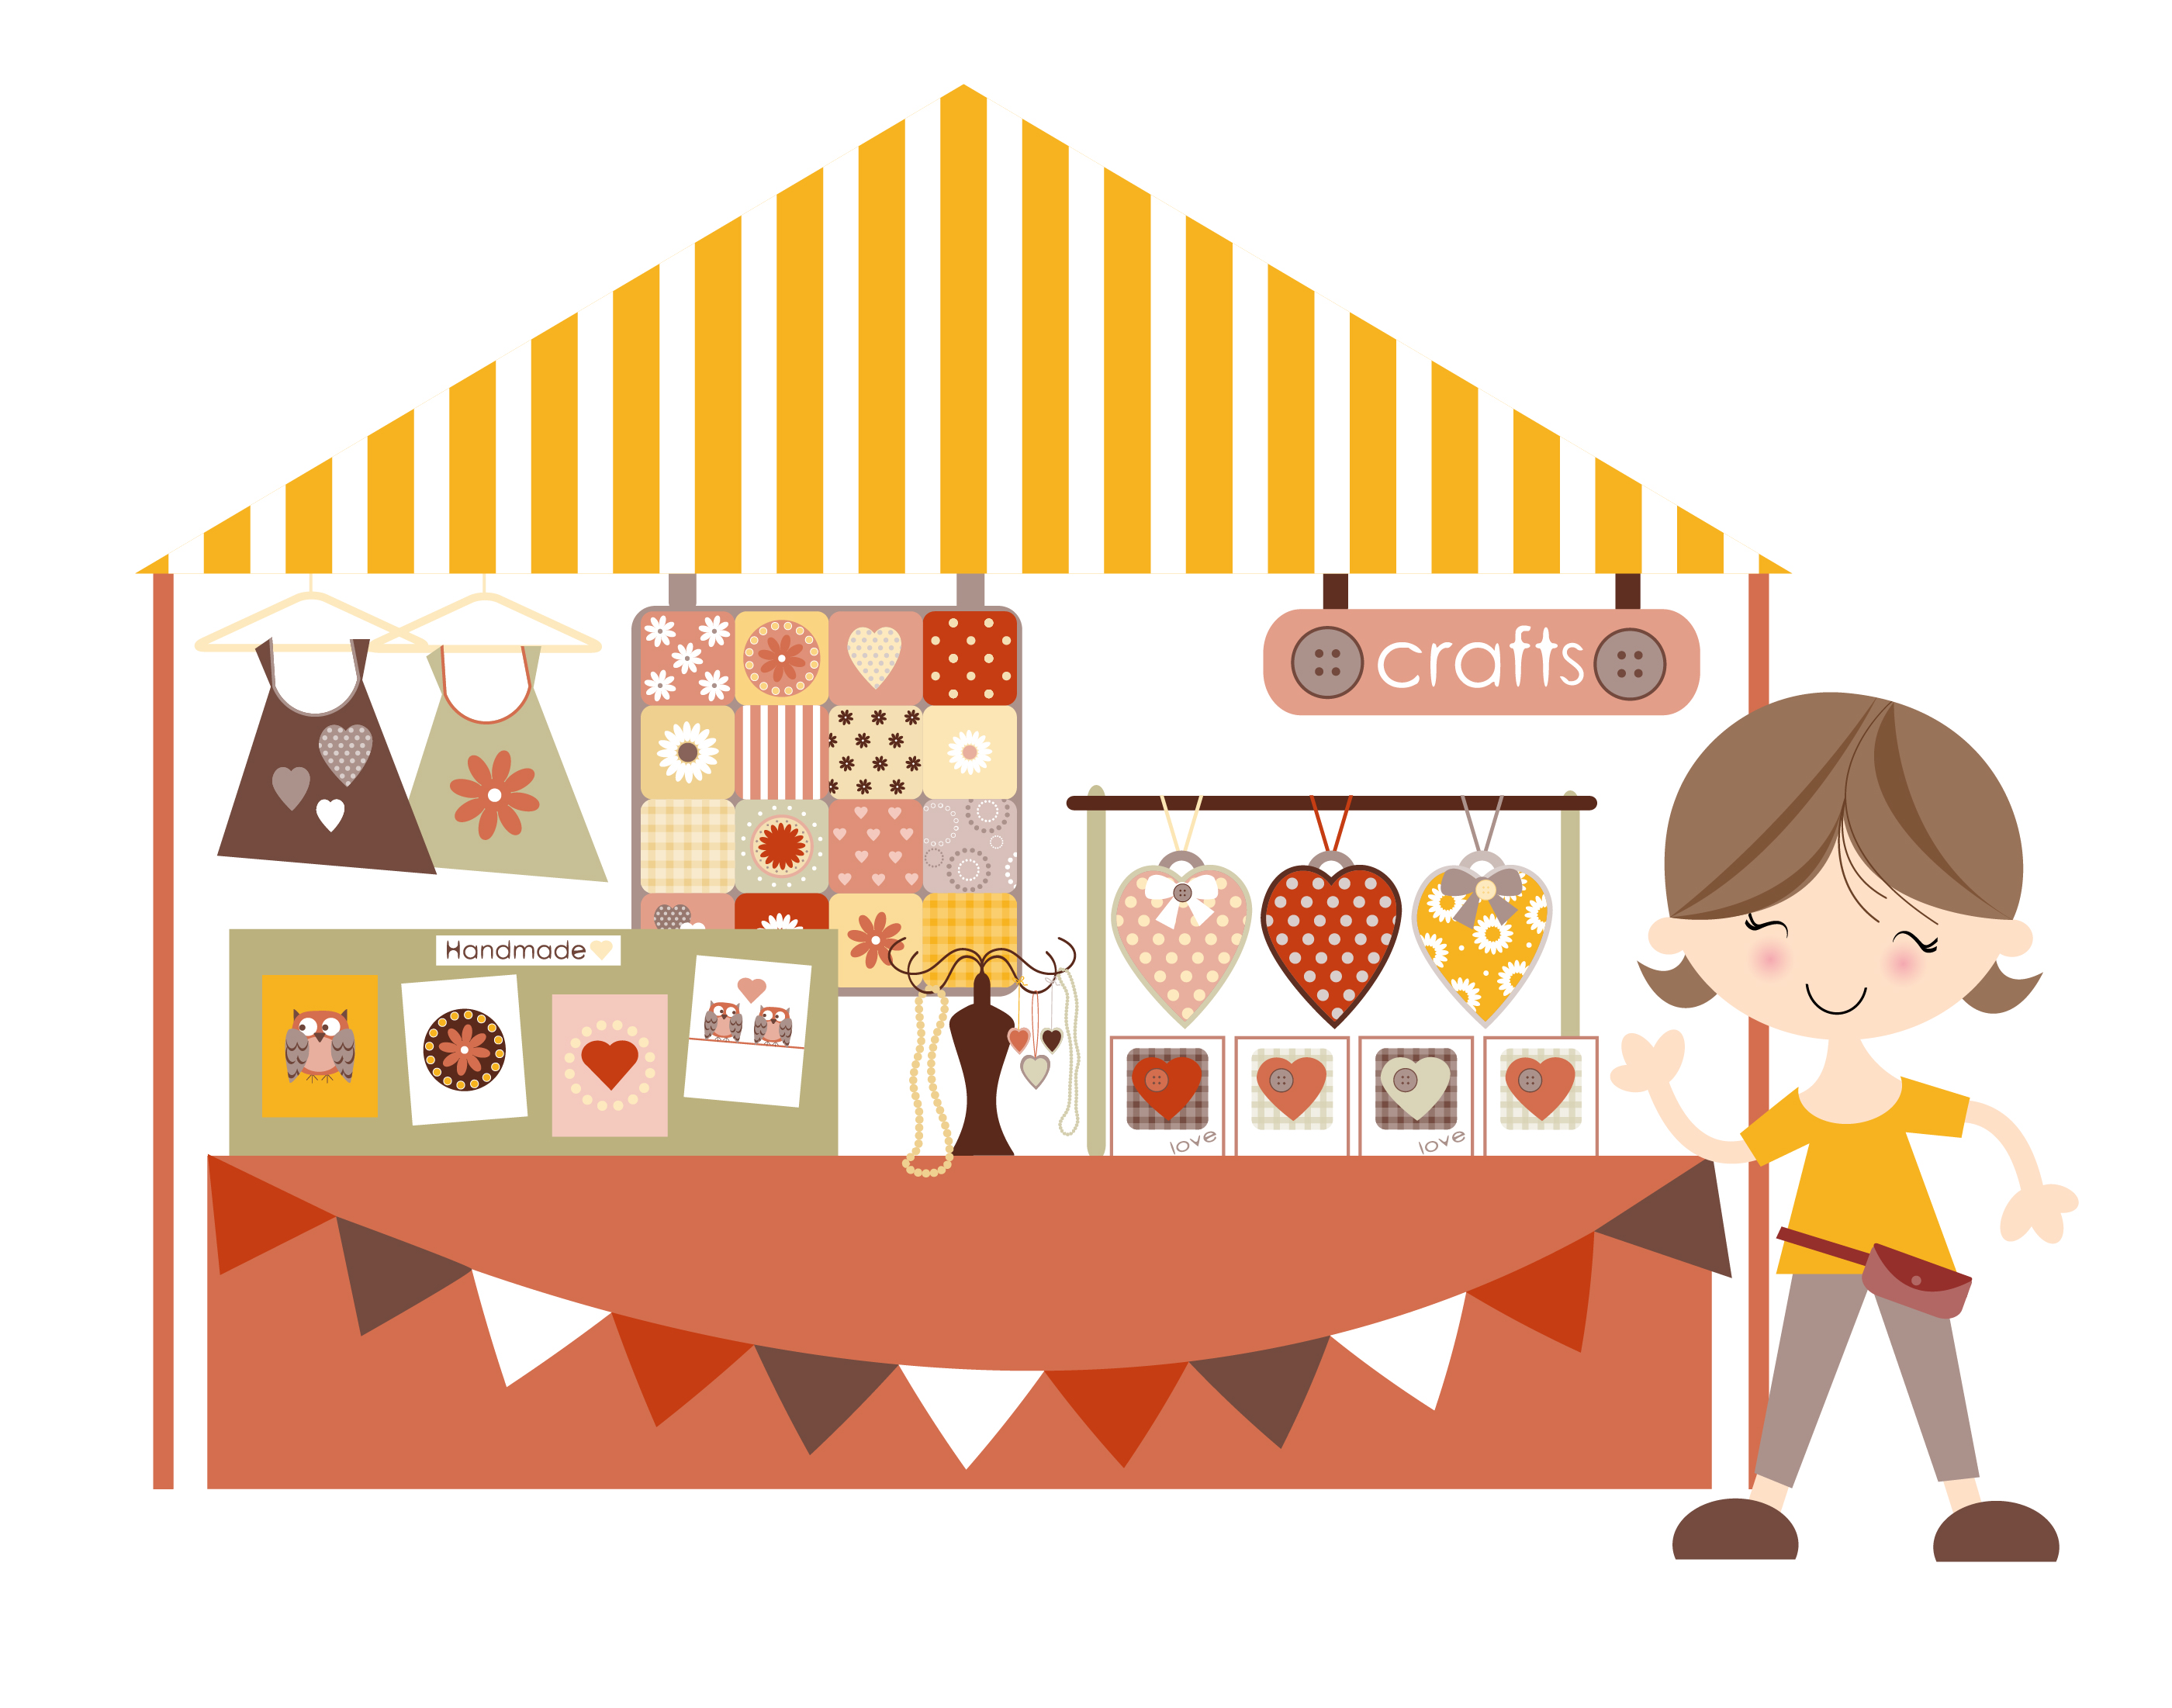 Crafts clipart crafty. Craft fair booth archives